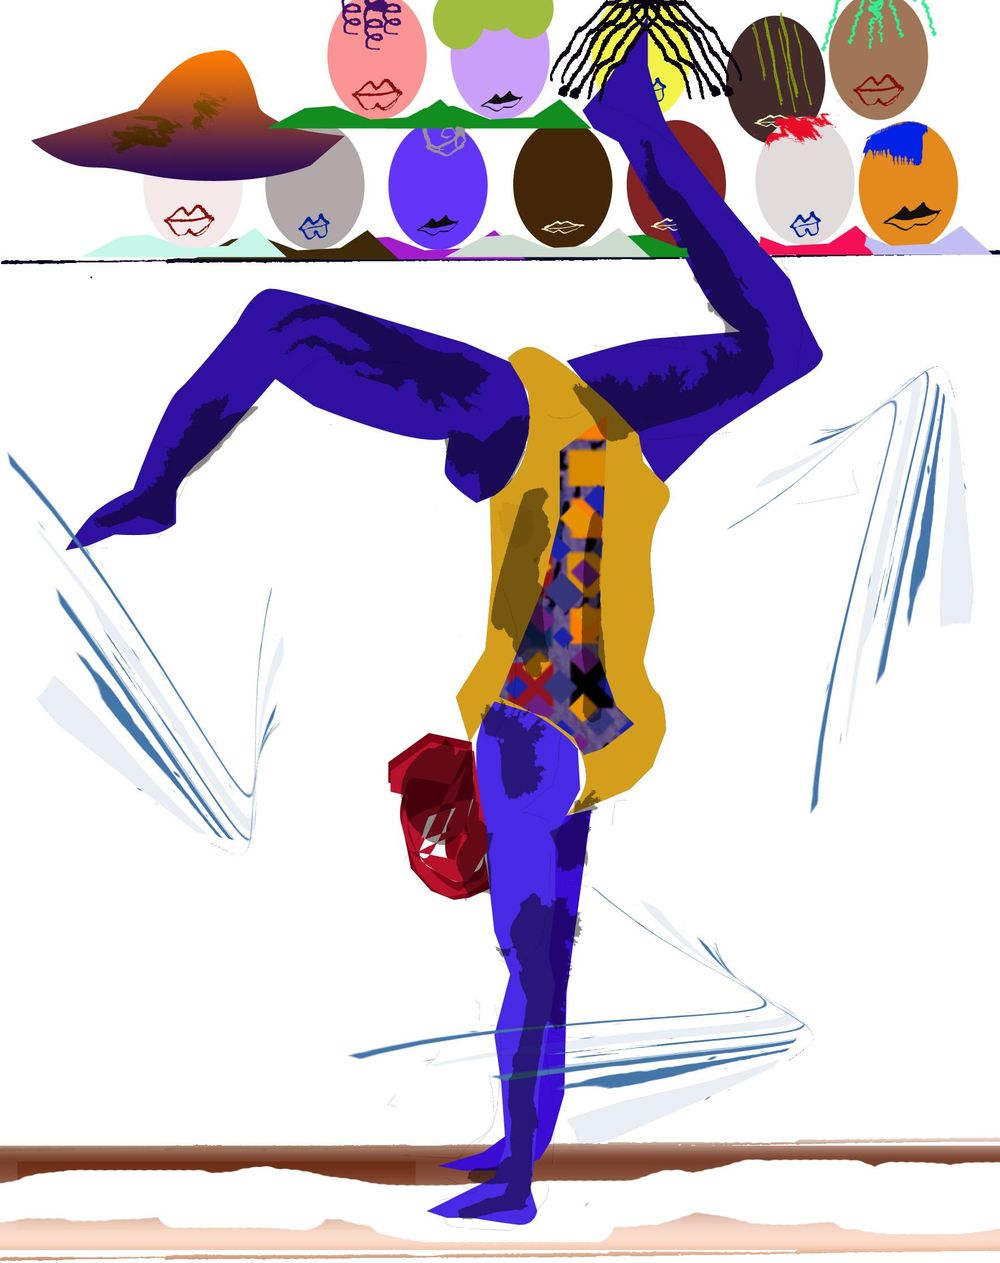 Colorful bodied gymnast by Afua - image 1 - student project